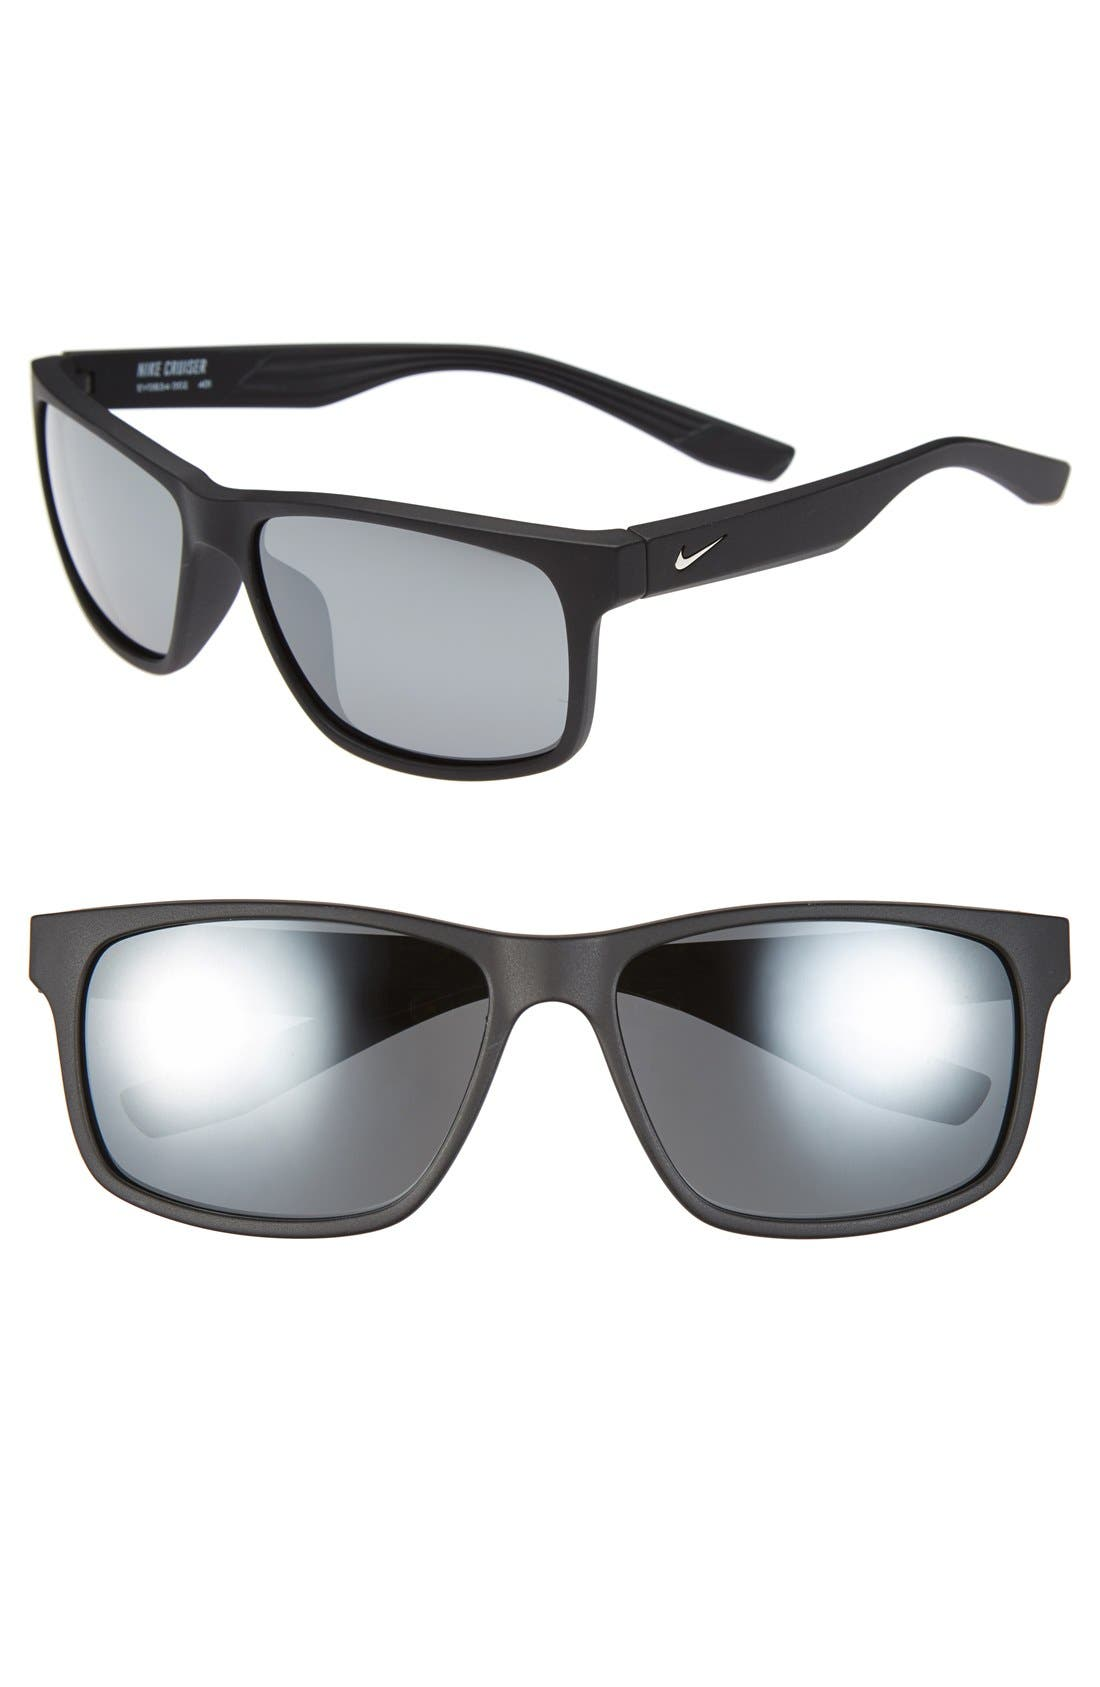 6fee3a372d5 Nike  Cruiser  5m Sunglasses -